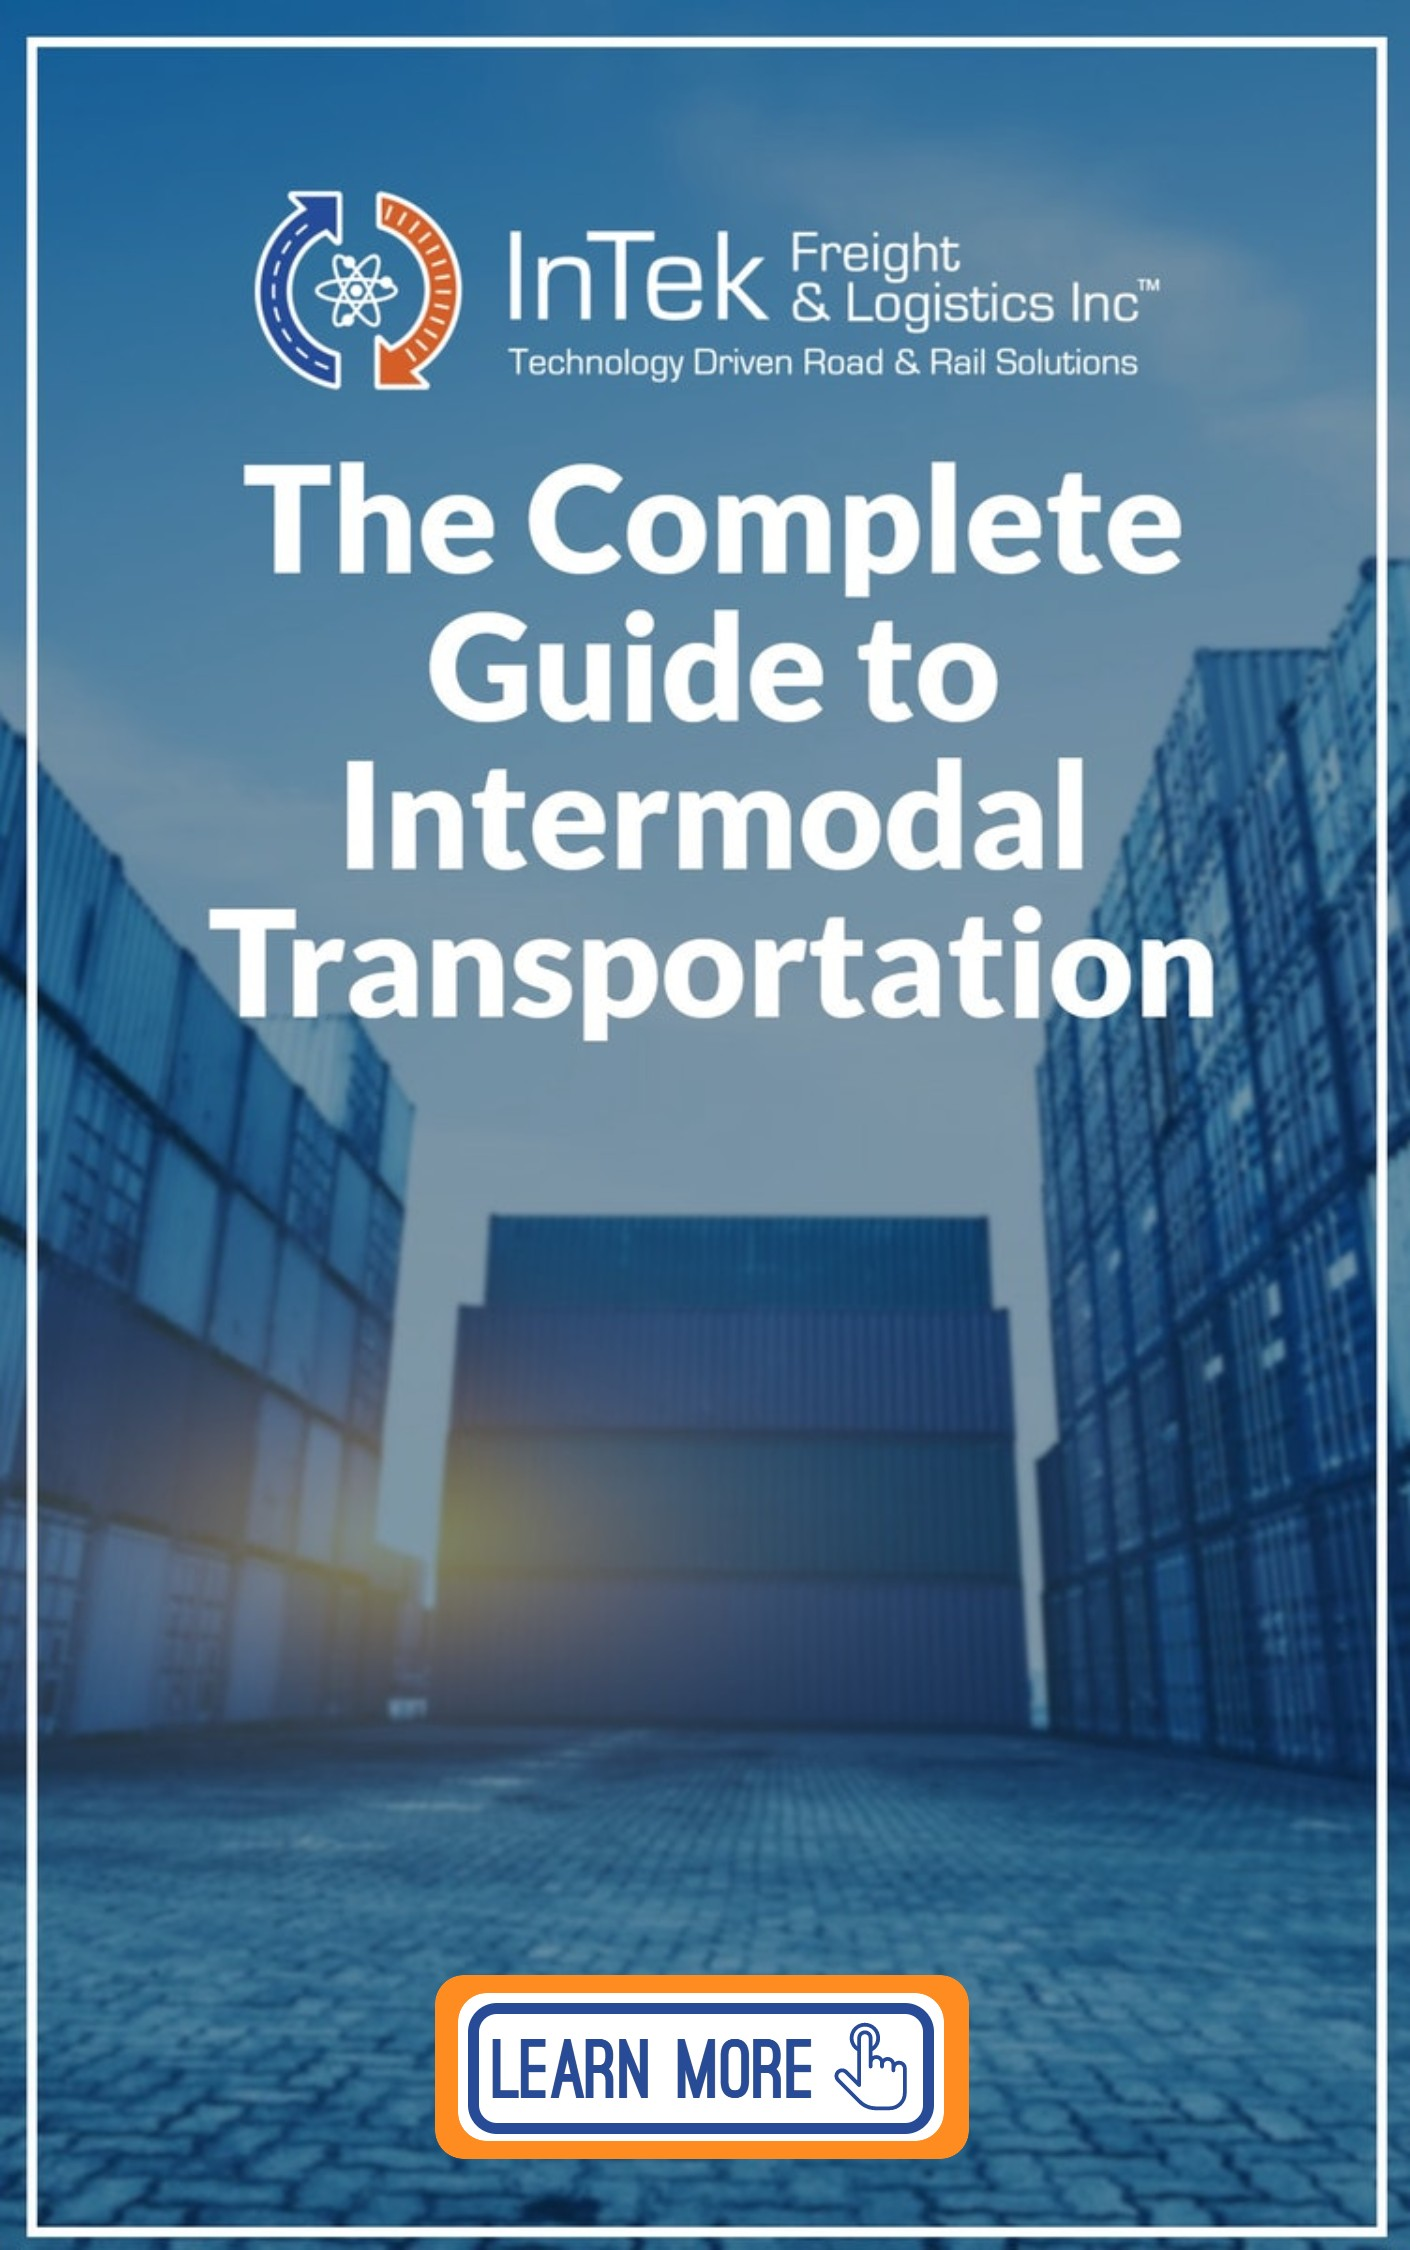 Complete Guide to Intermodal Transportation